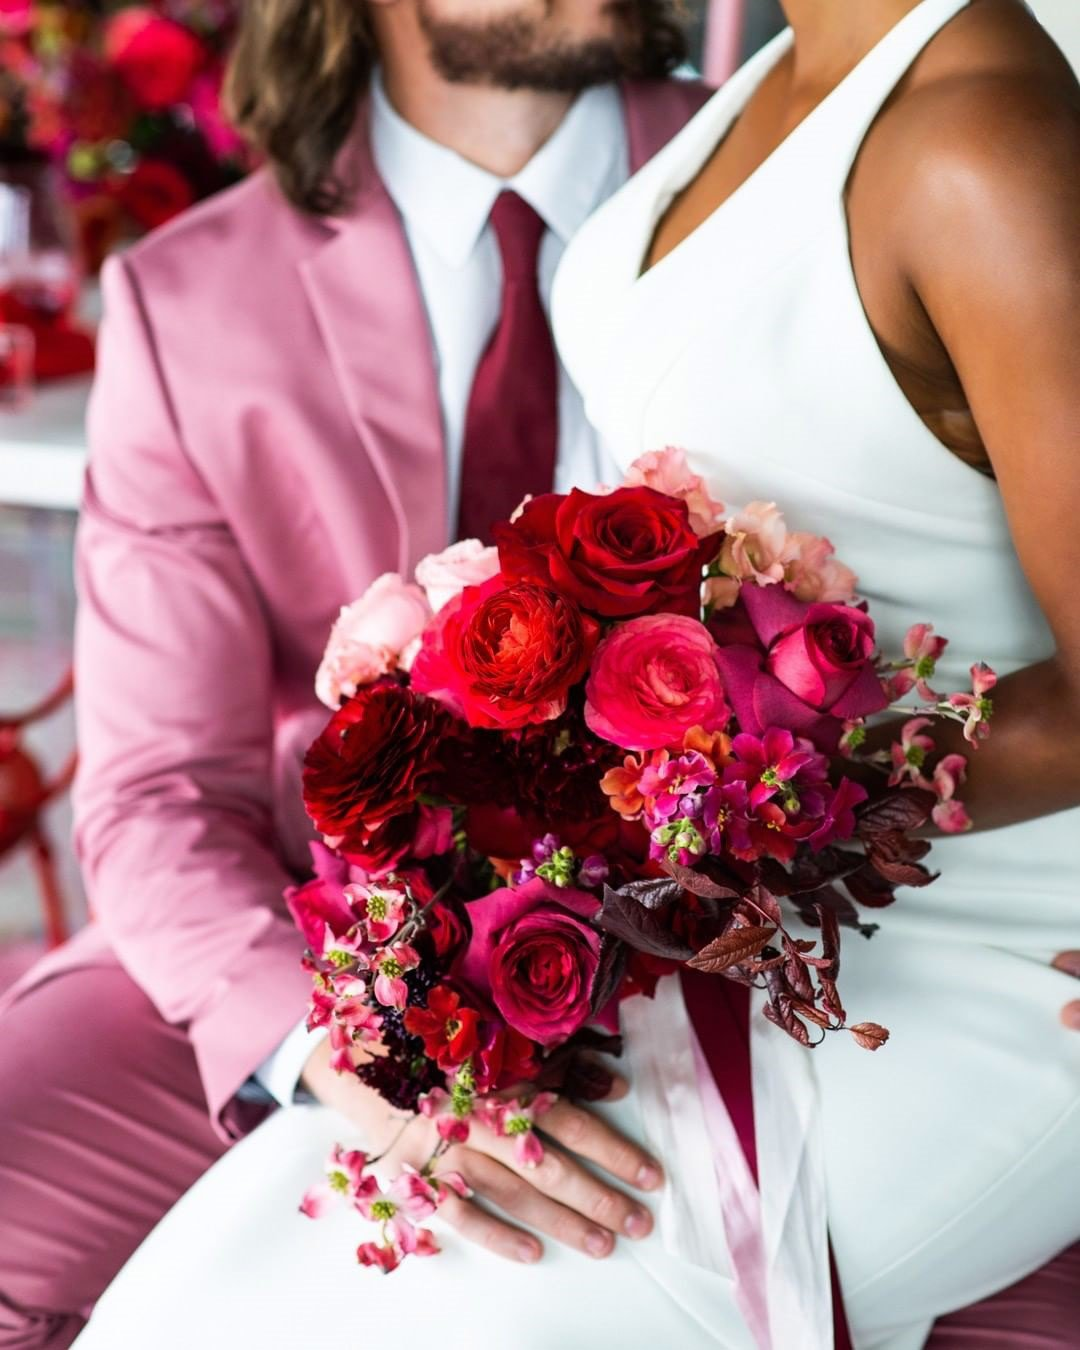 wedding colors red pink groom bride bouquet